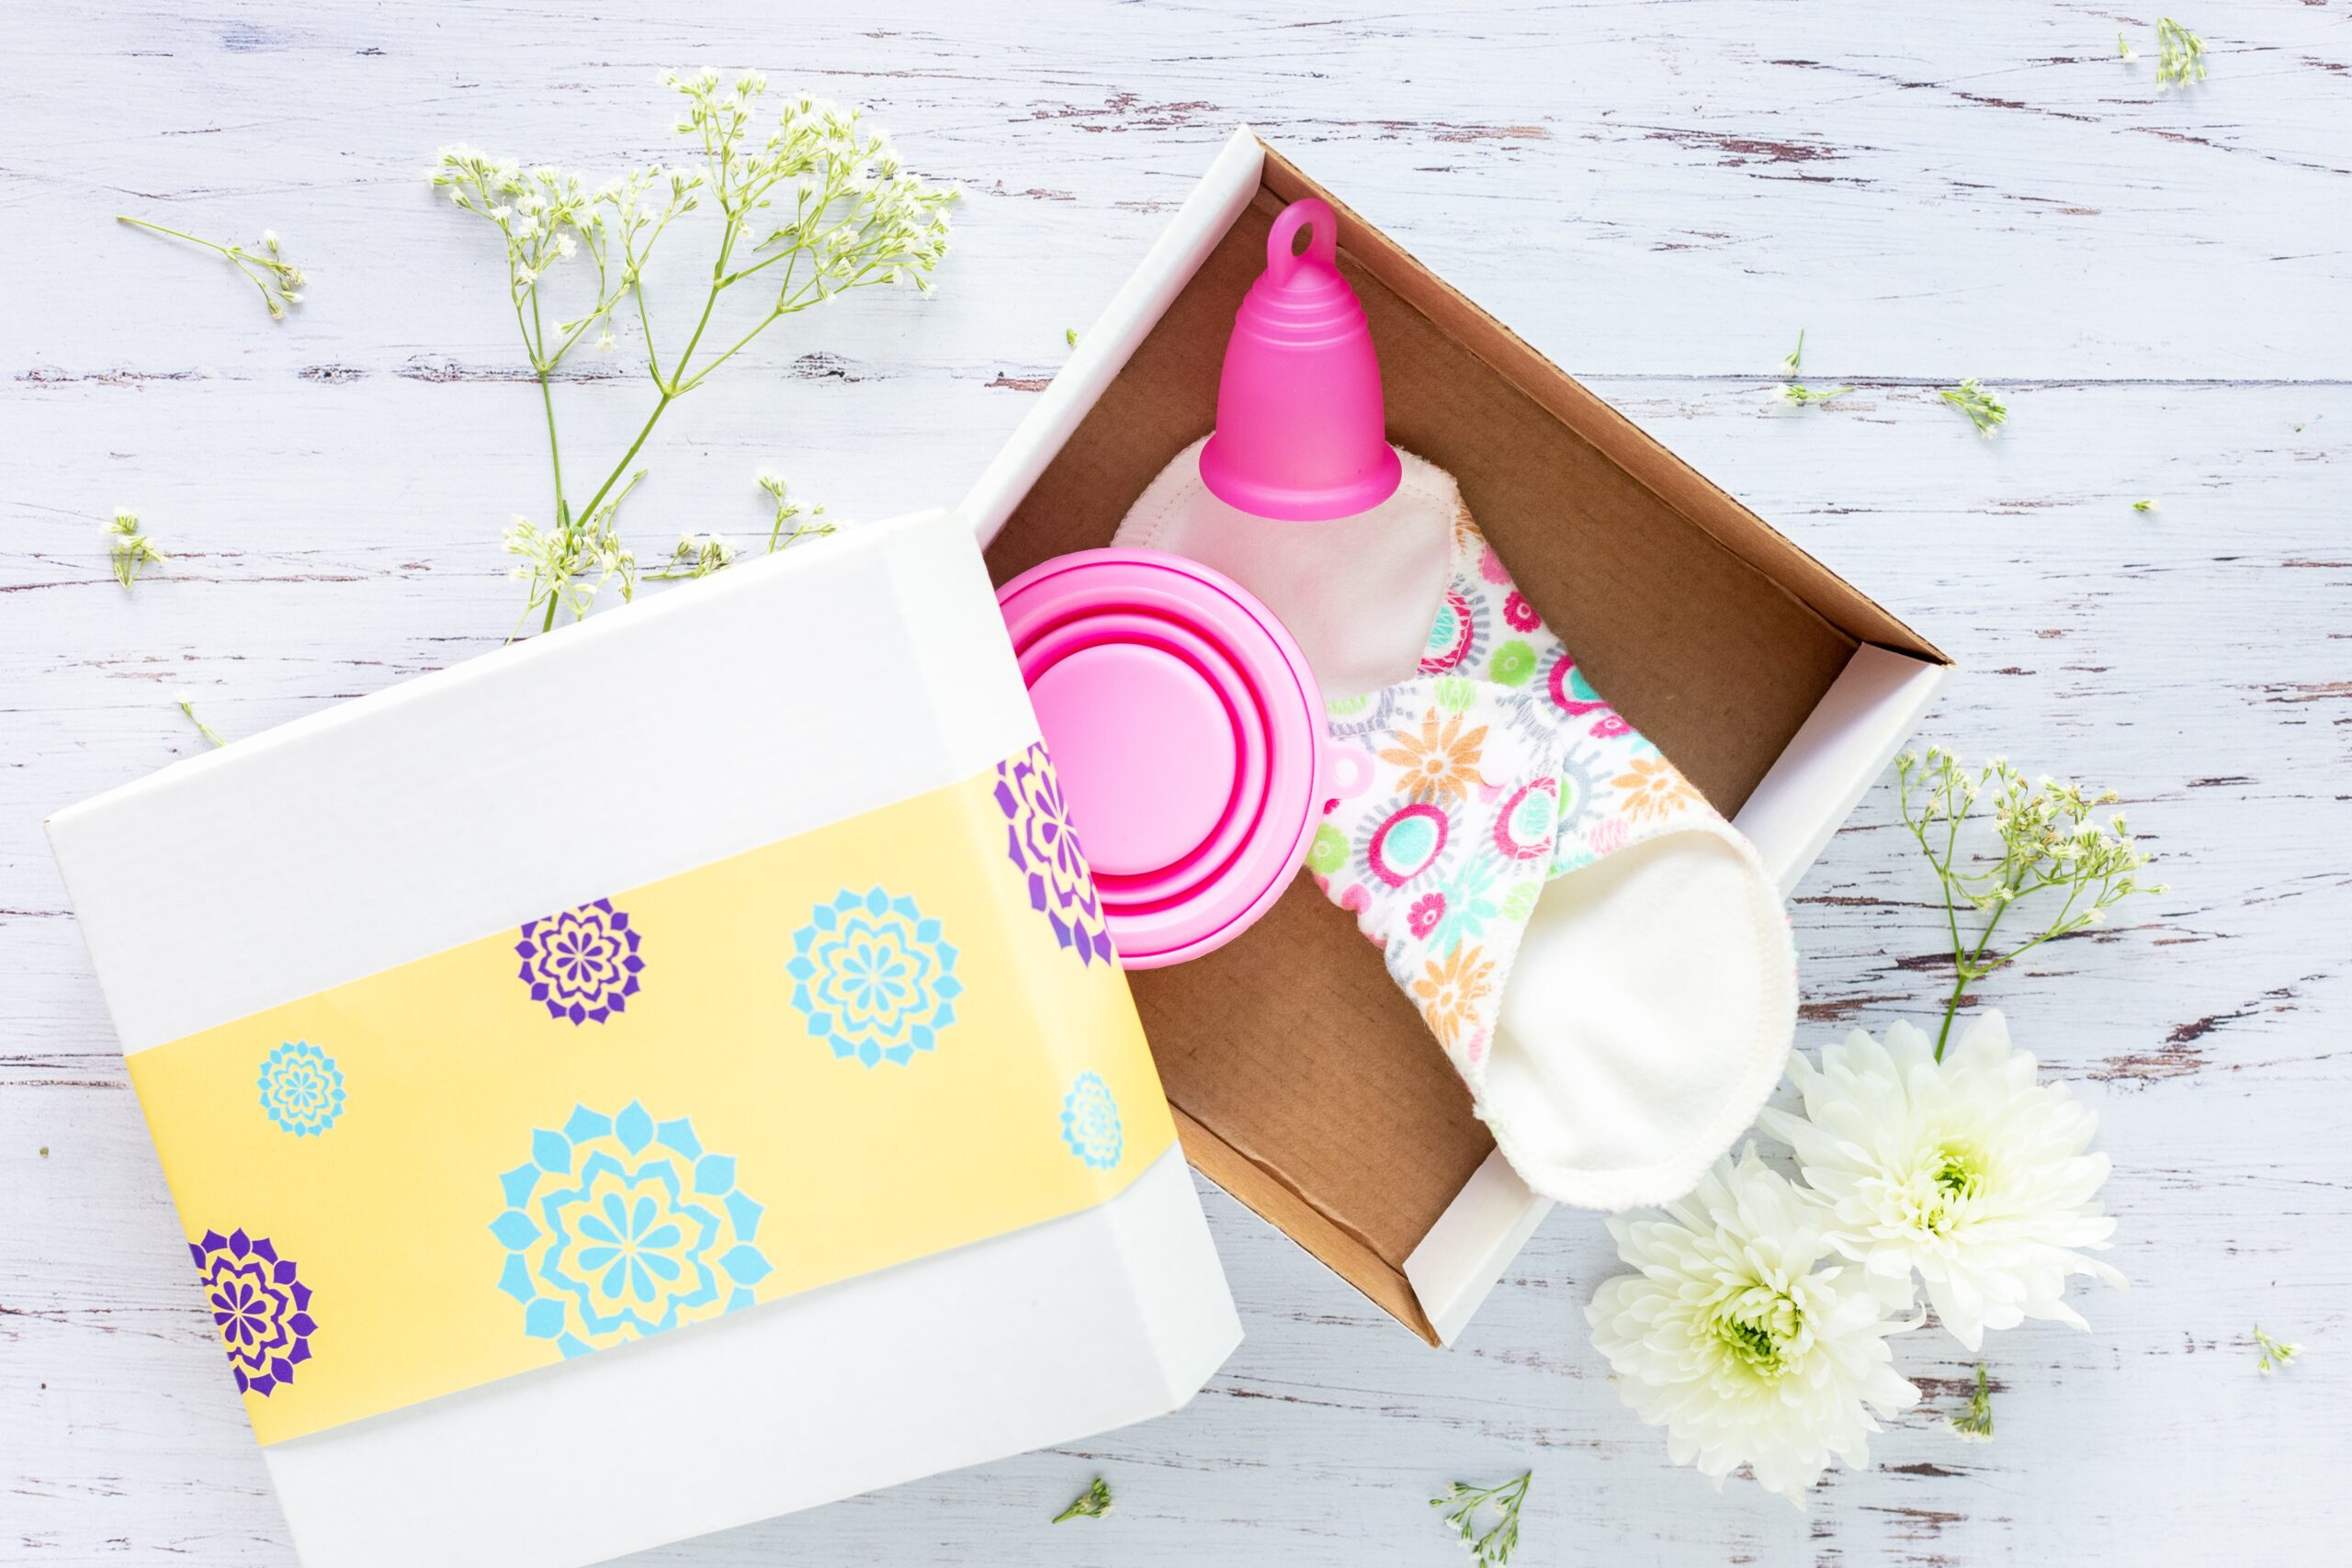 How to Use Menstrual Cup Easily